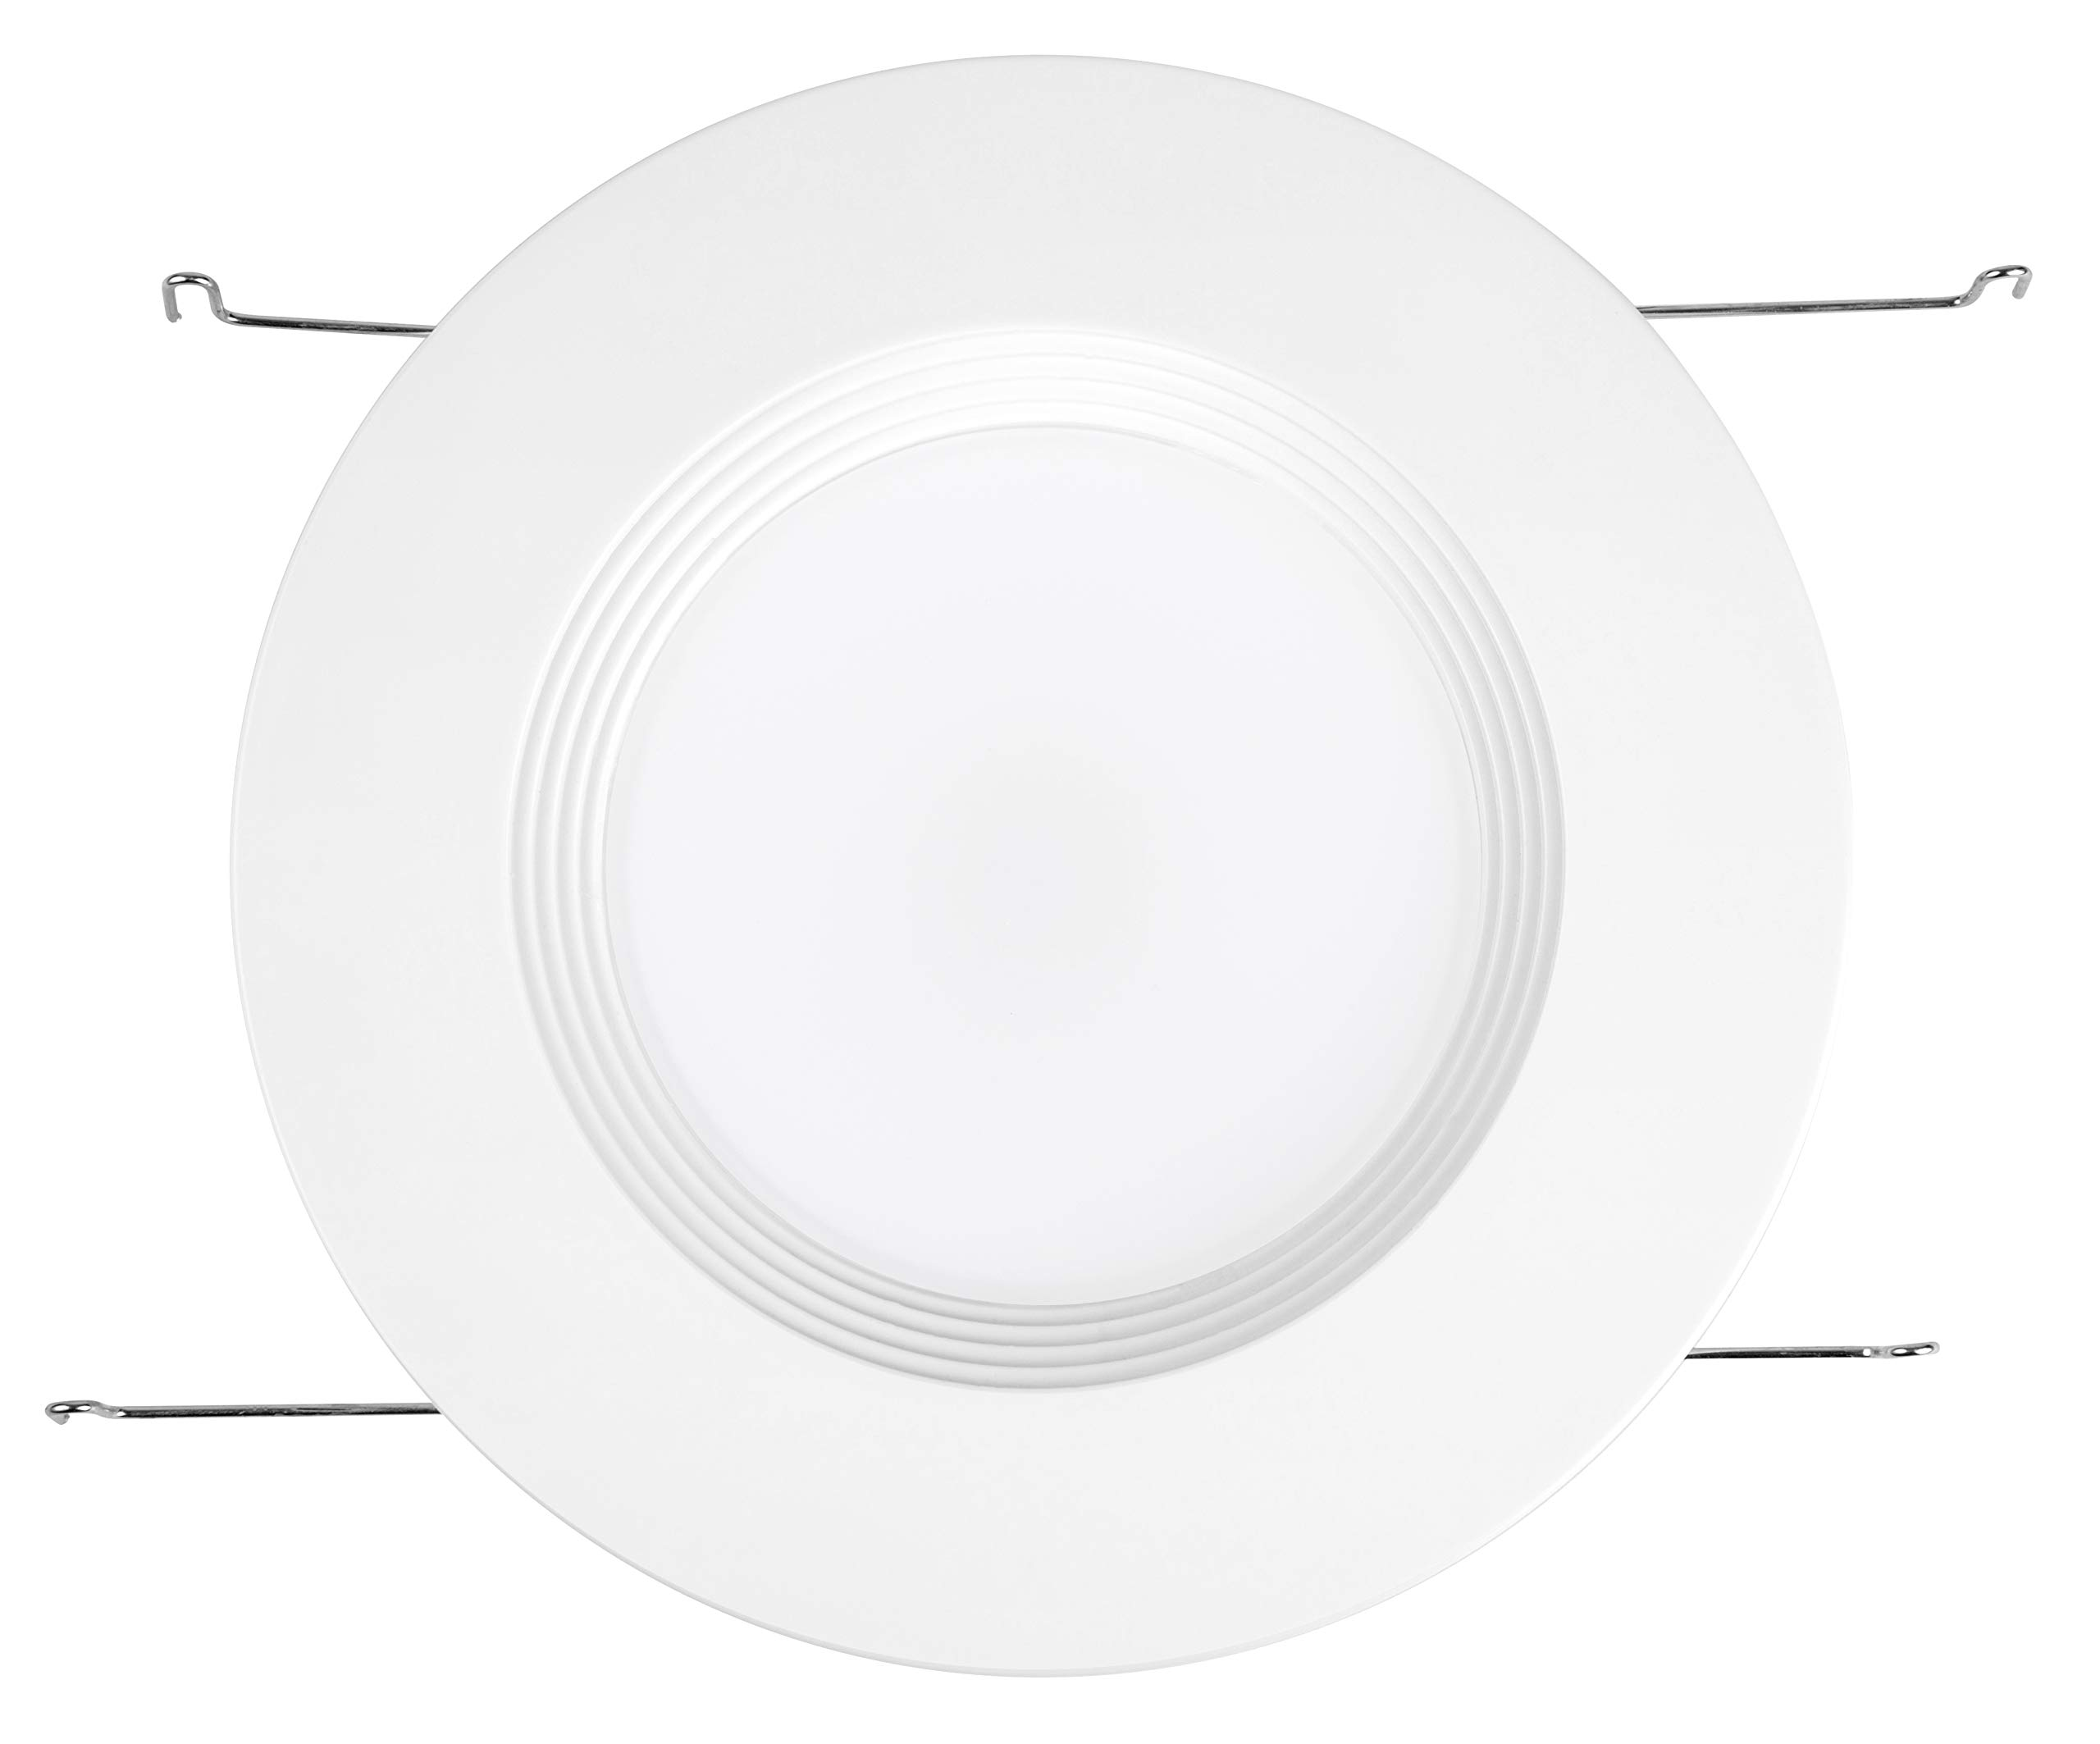 """Hyperikon 6"""" LED Recessed Lights (5 Inch Compatible) 14W Downlight Dimmable (75W Equiv.) LED Retrofit Lighting Fixture, Ceiling Recess Can Lights, Halo Retrofit Baffle Trim, 3000K, CRI84, UL (16 Pack) by Hyperikon (Image #5)"""